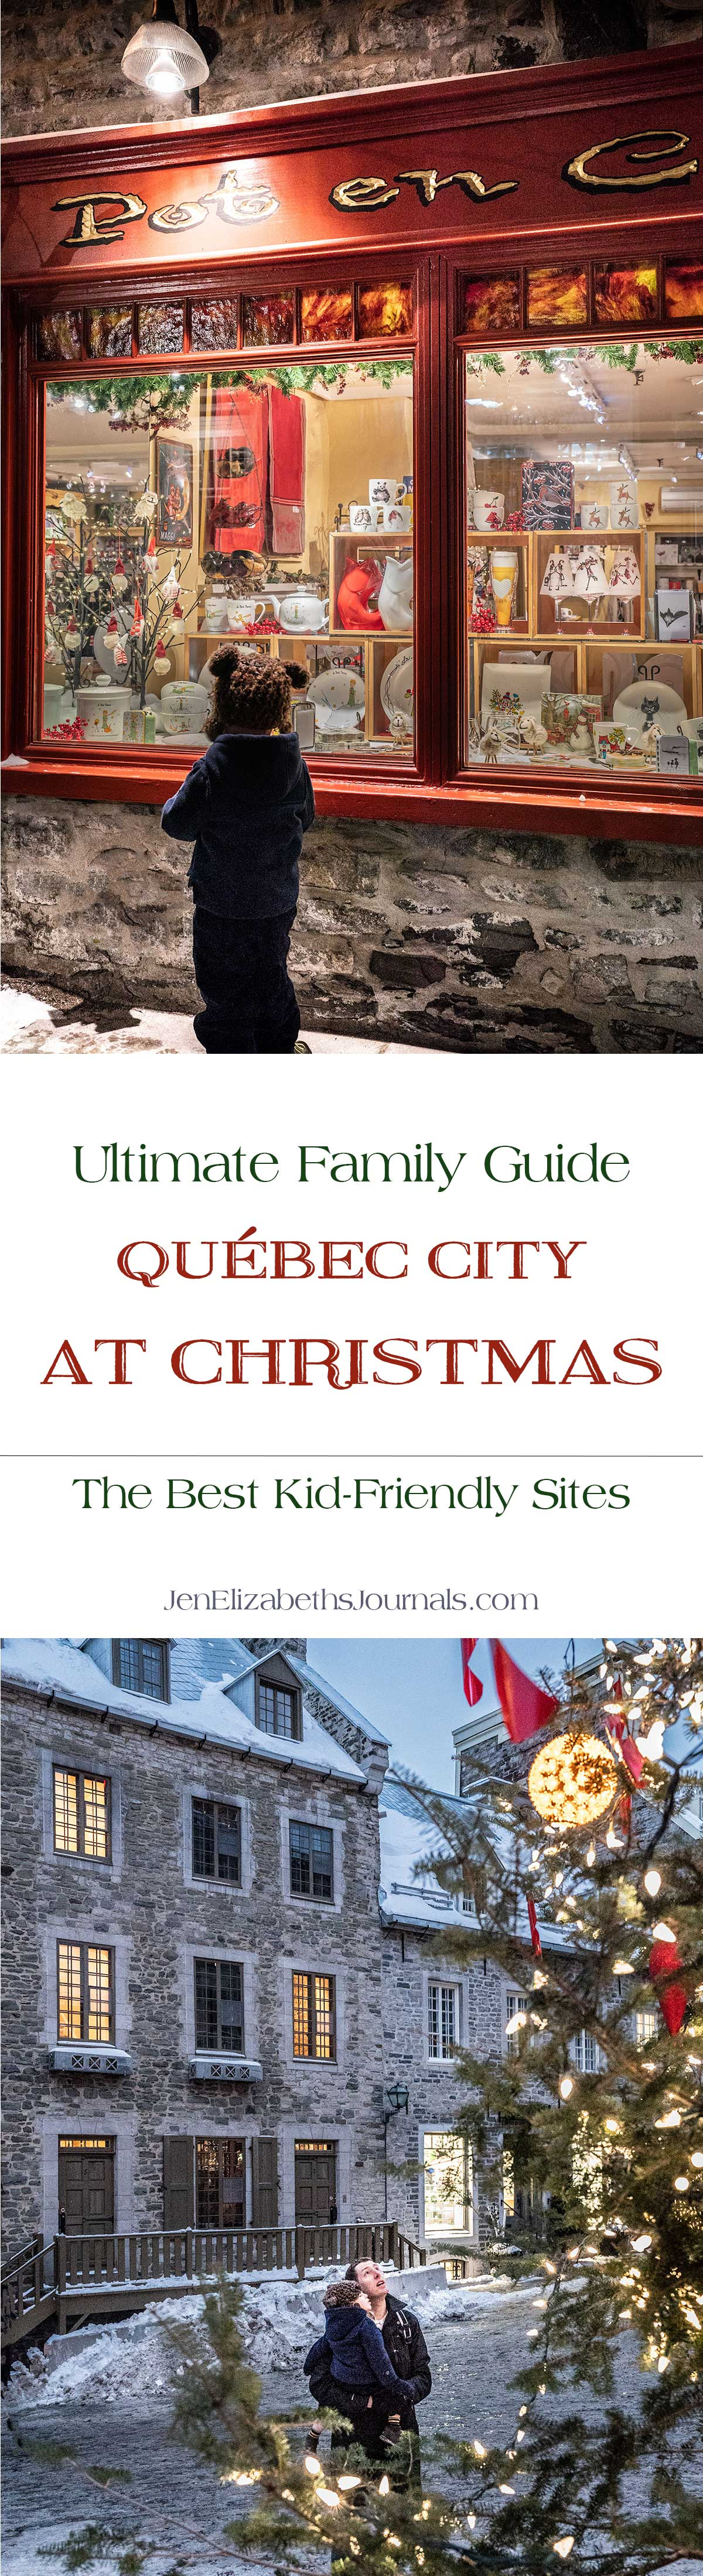 Ultimate-Weekend-Guide-for-Families-to-Quebec-City-at-Christmas